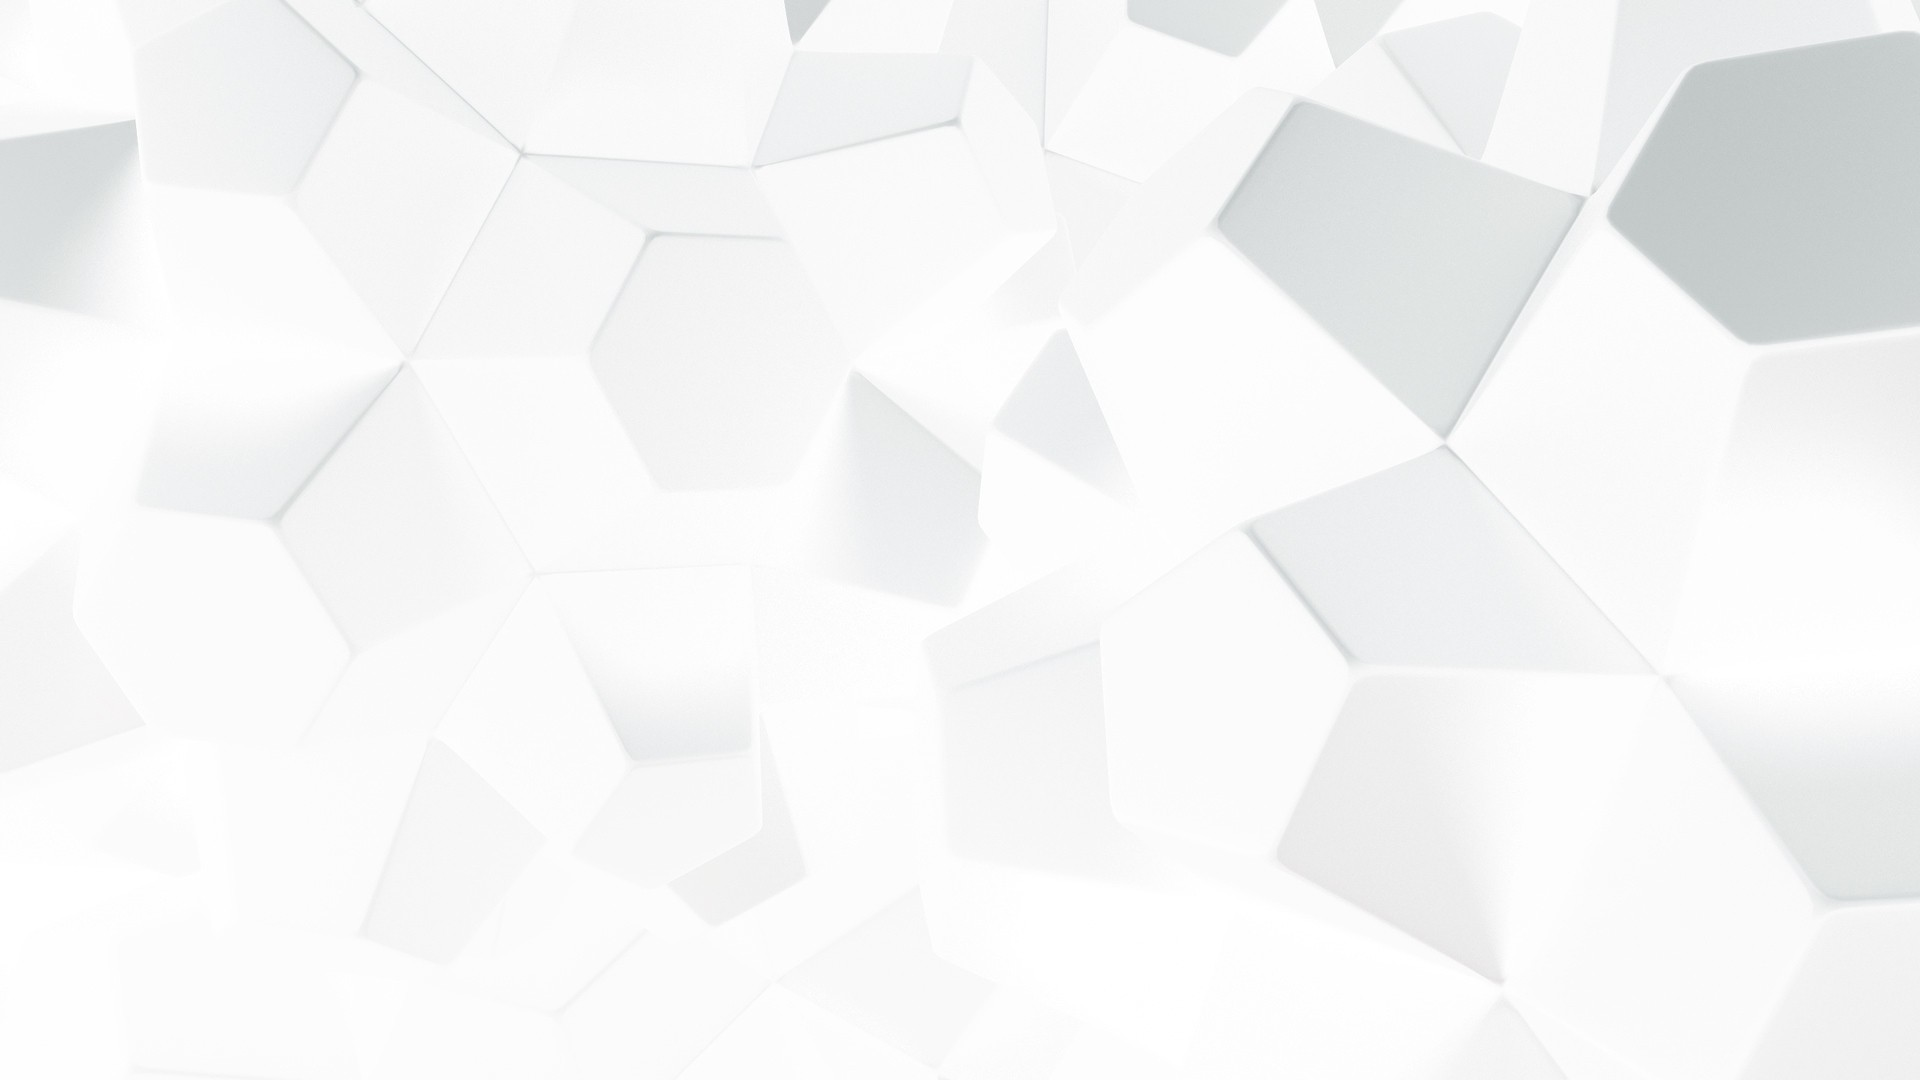 Solid White Wallpaper image hd